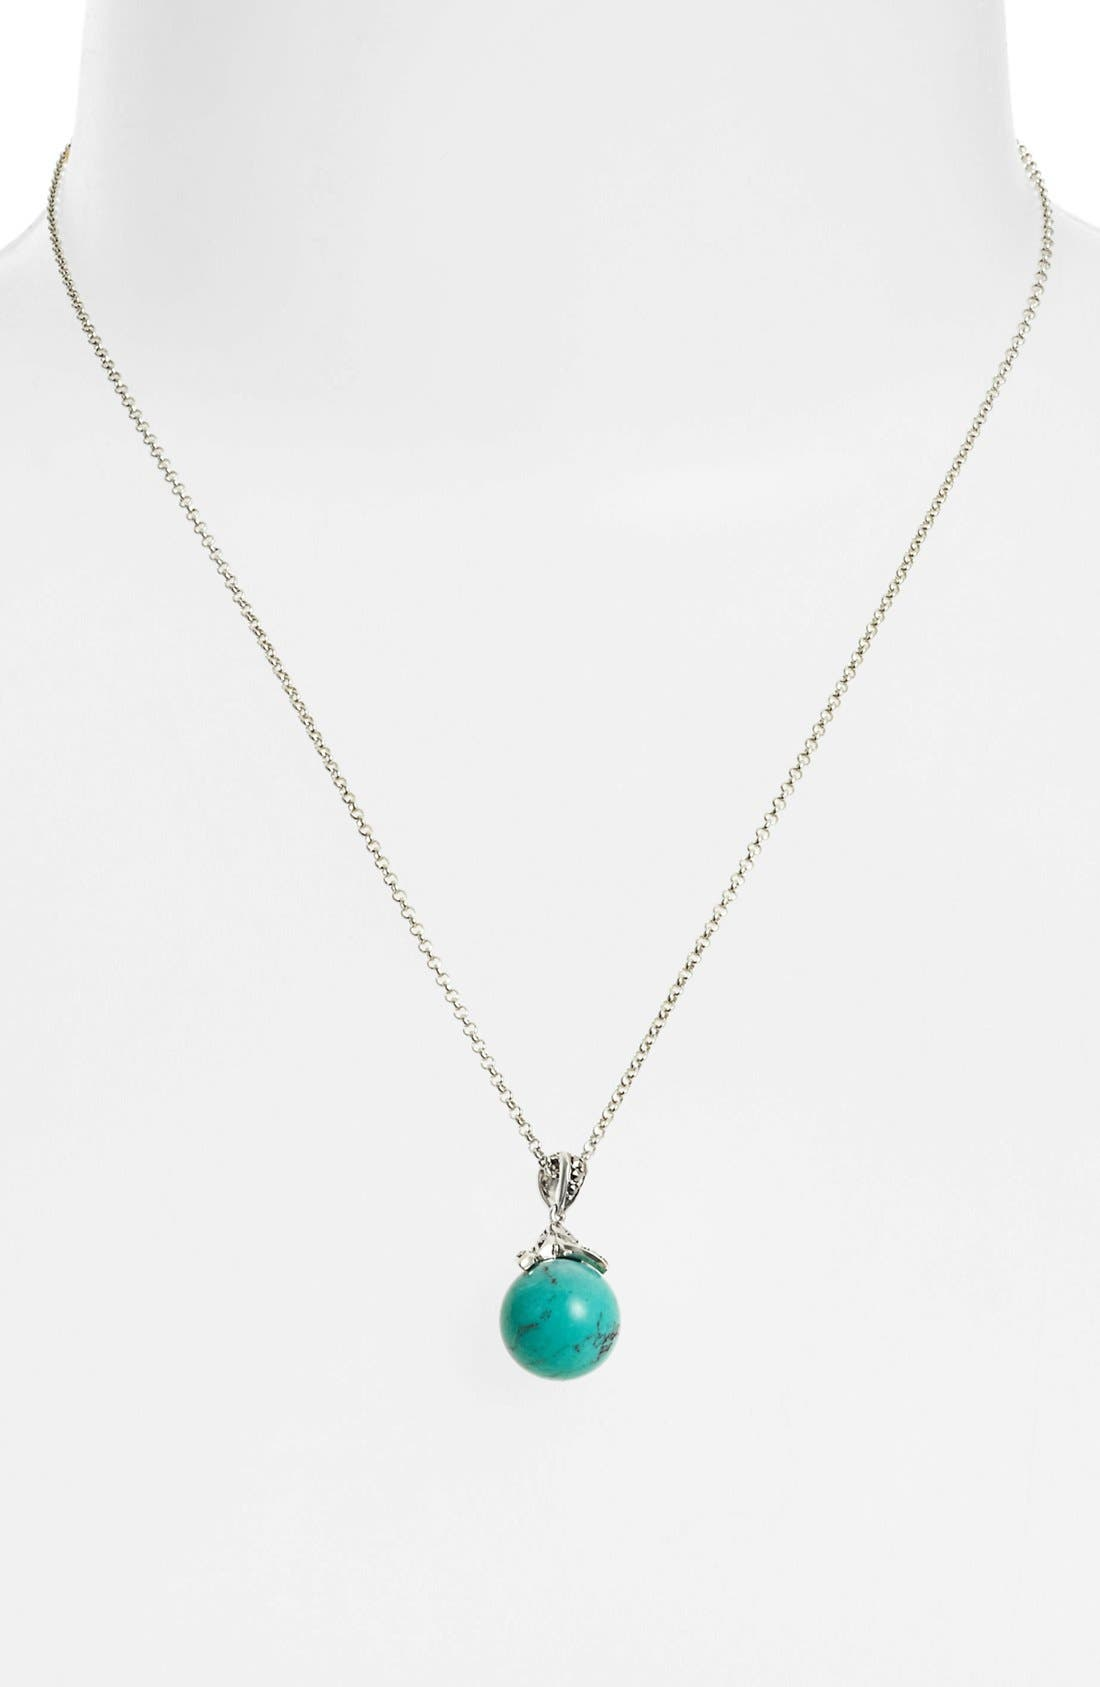 Alternate Image 1 Selected - Judith Jack Turquoise Pendant Necklace